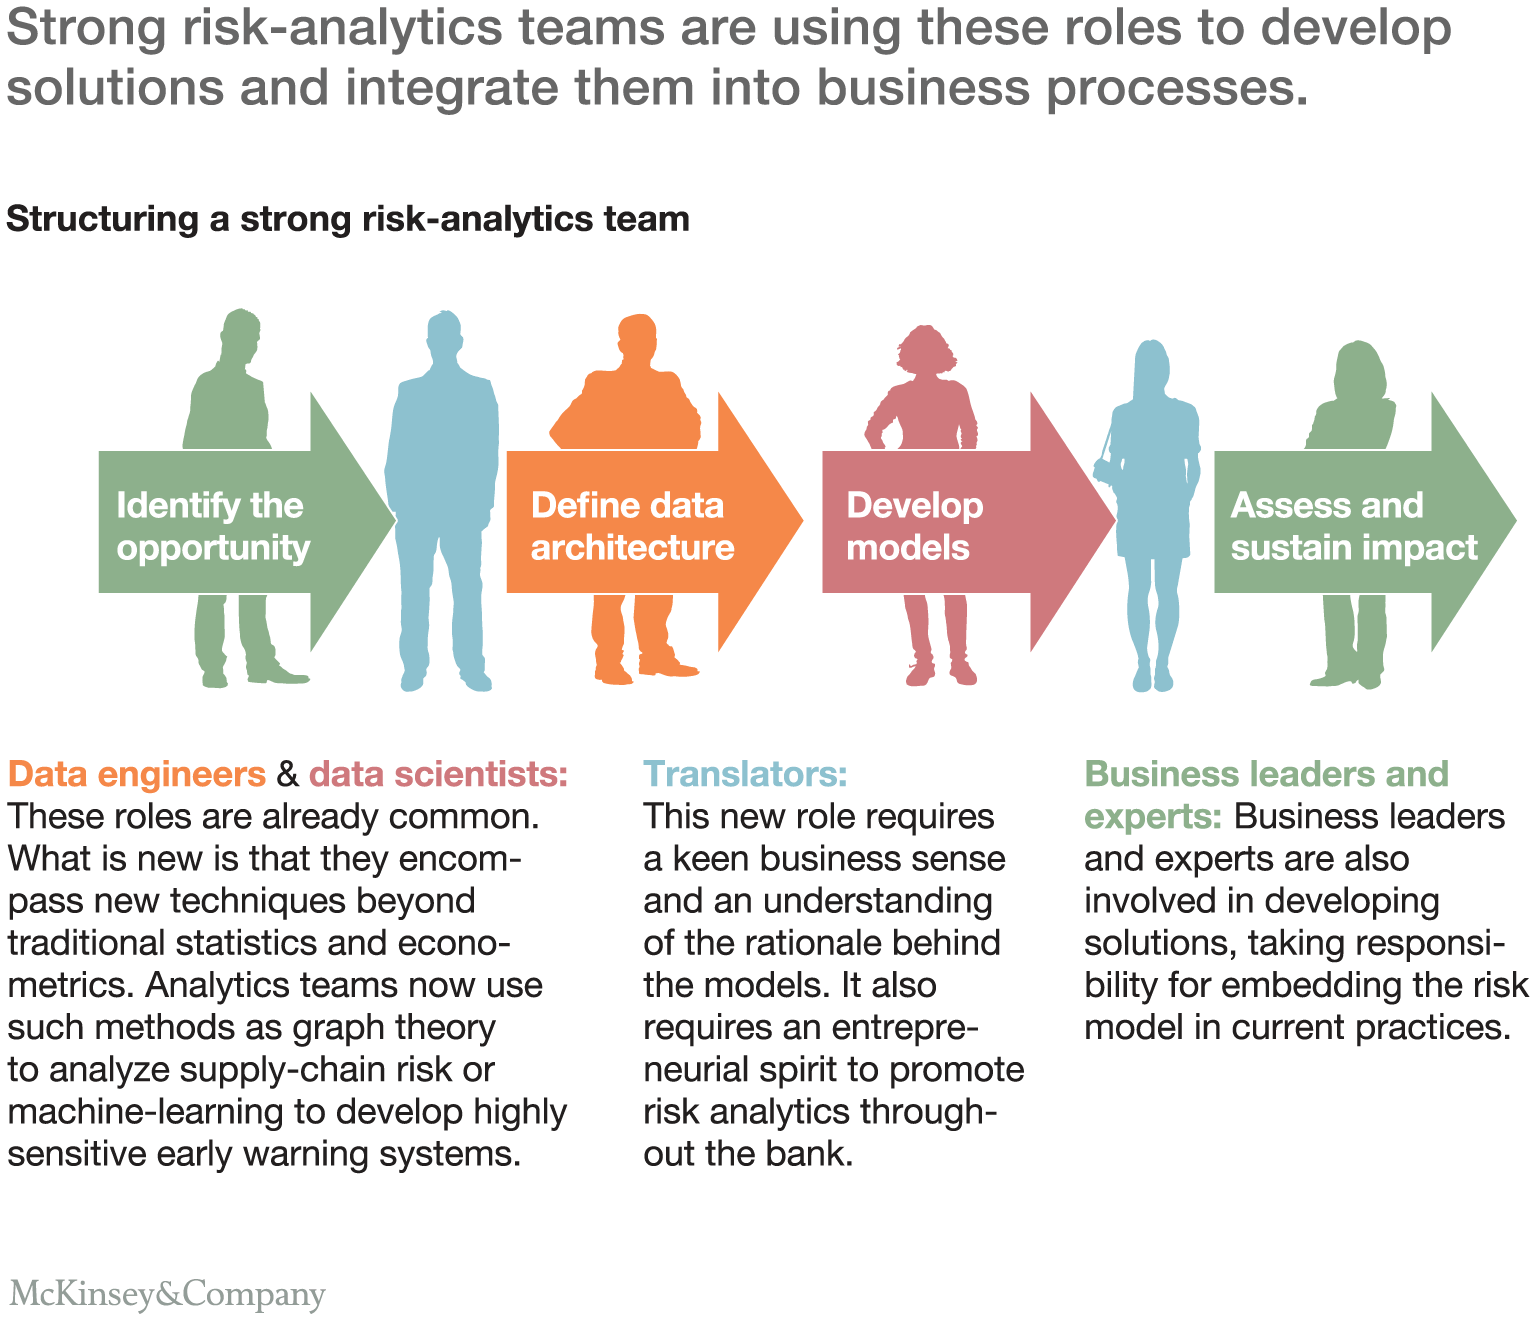 Strong risk-analytics teams are using these roles to develop solutions and integrate them into business processes.